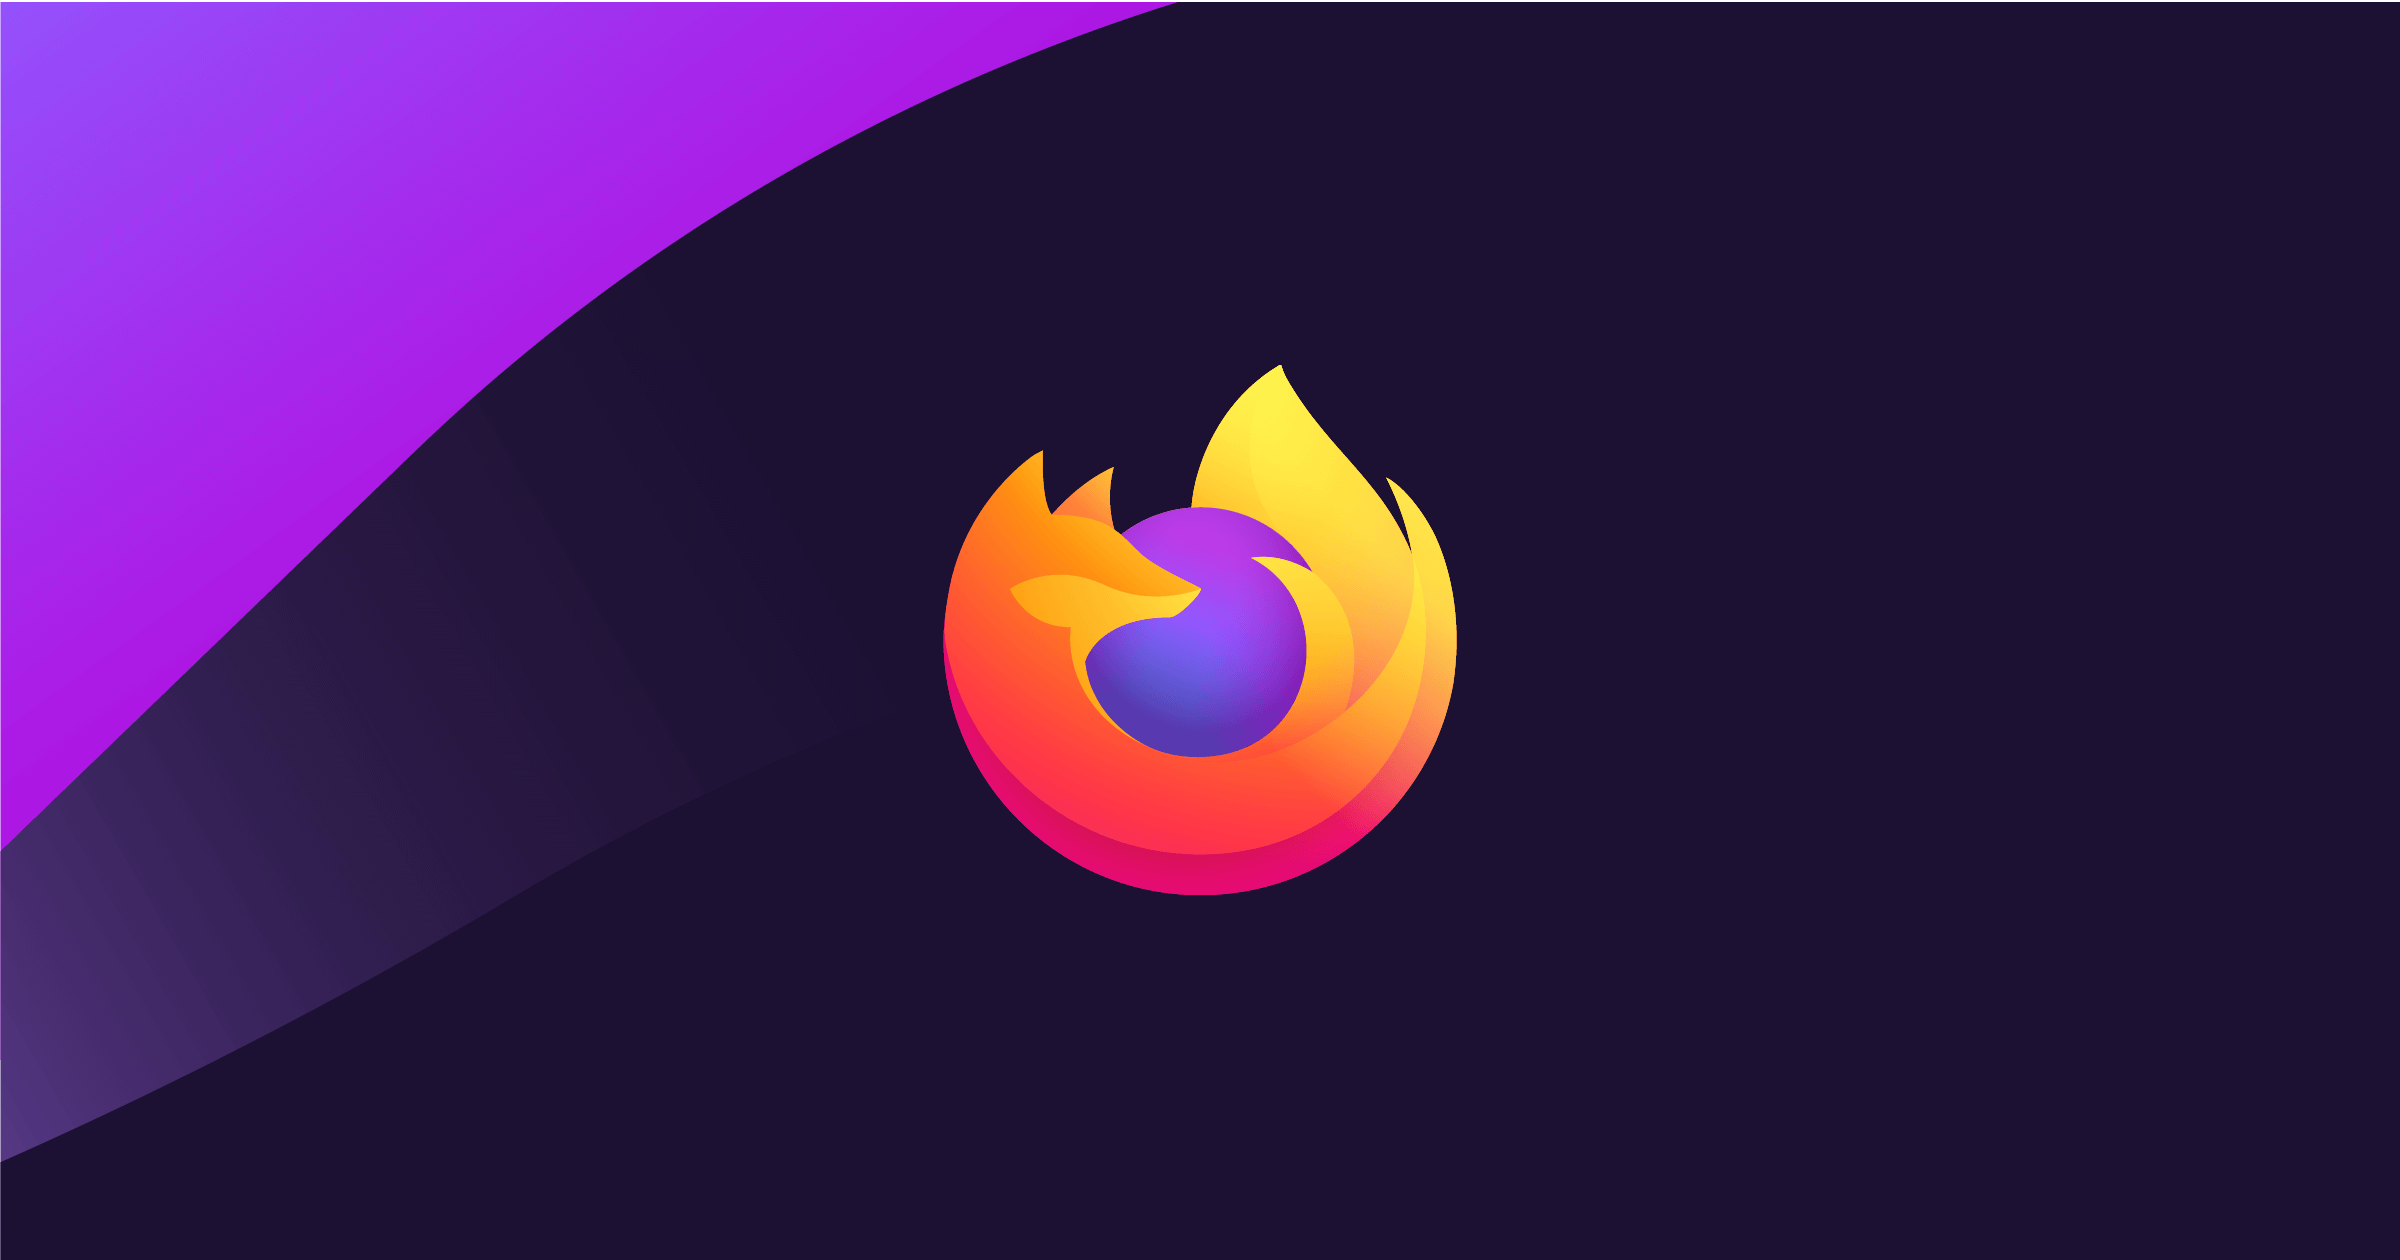 5 of the Most Important New Features in the Firefox New Update!